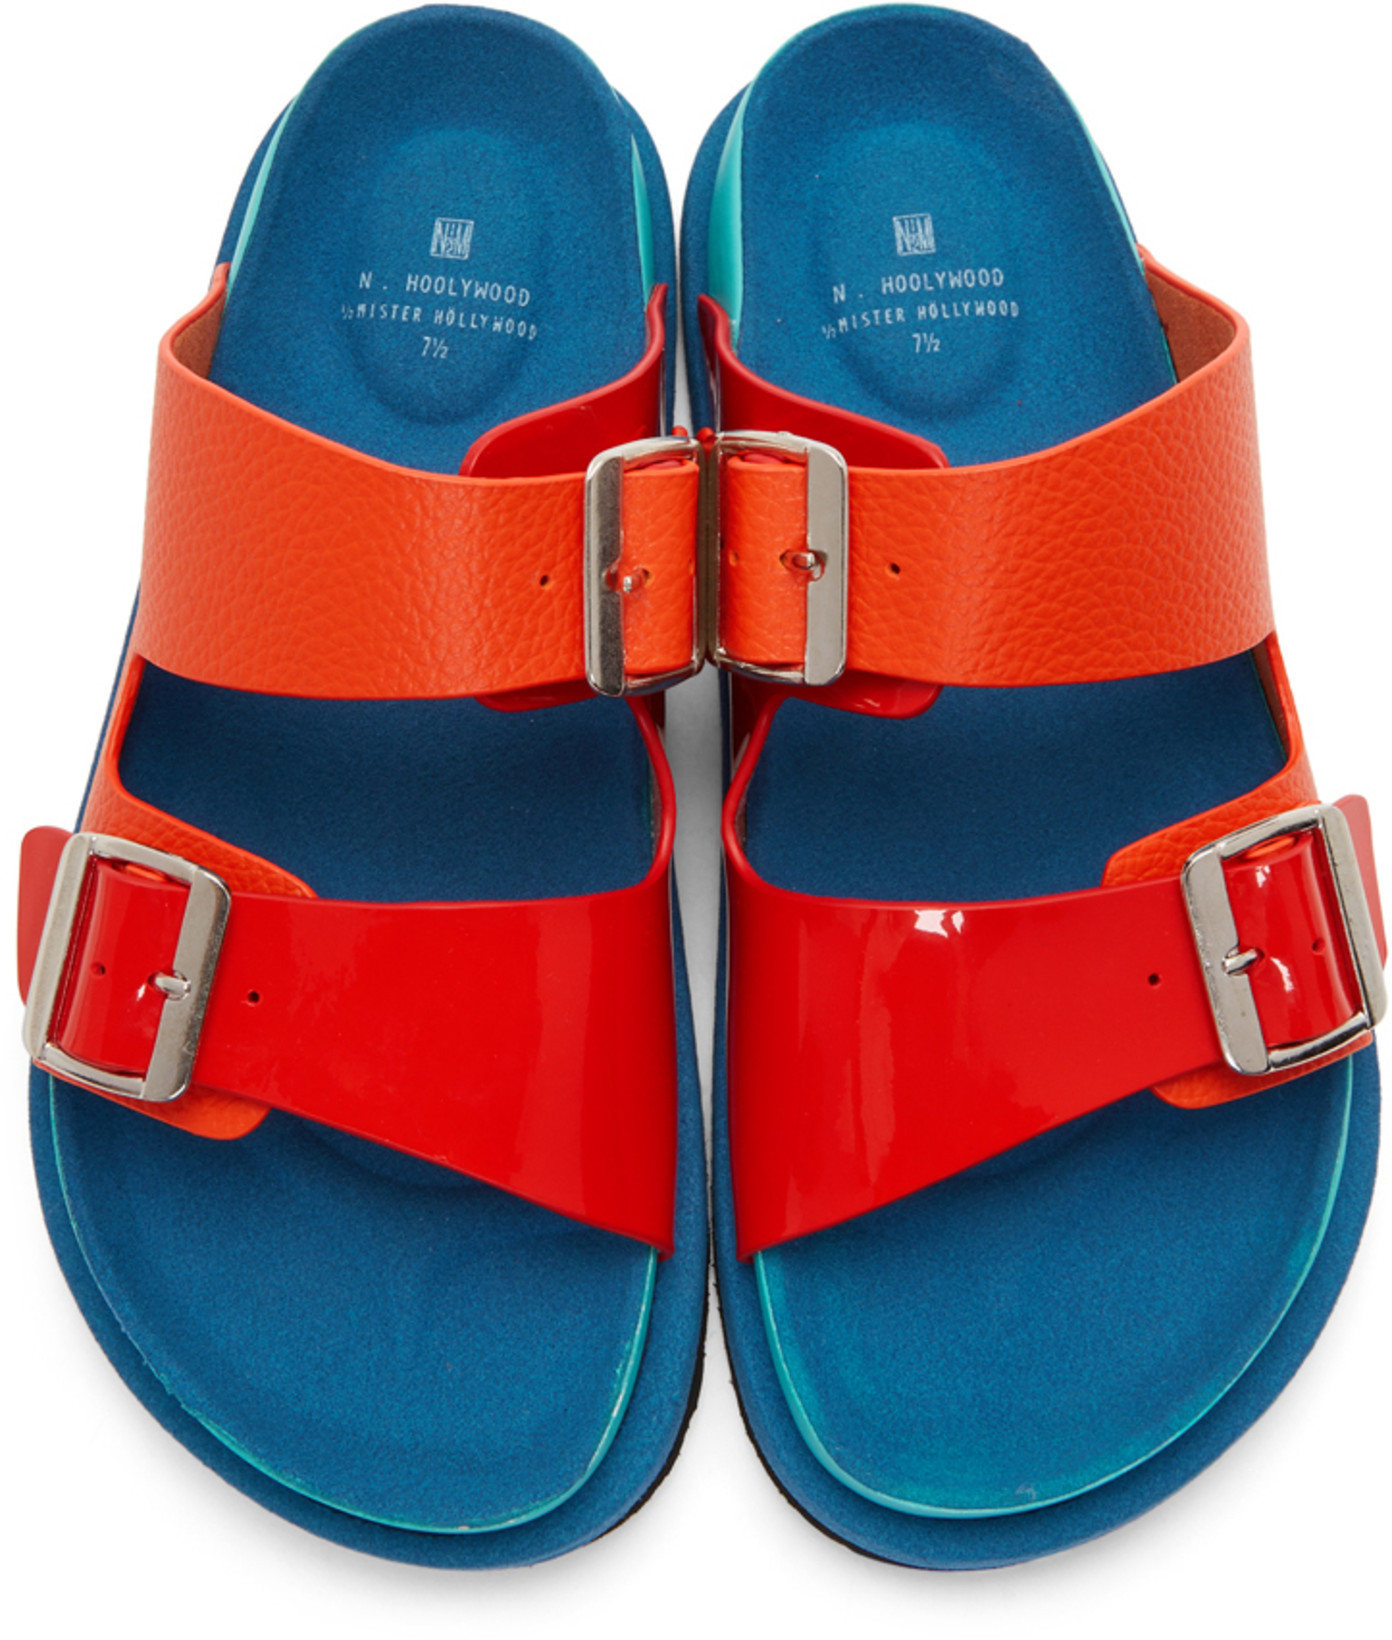 N. Hoolywood - Multicolor Strap Sandals / $198Patent leather and bright enough to spice up any look.